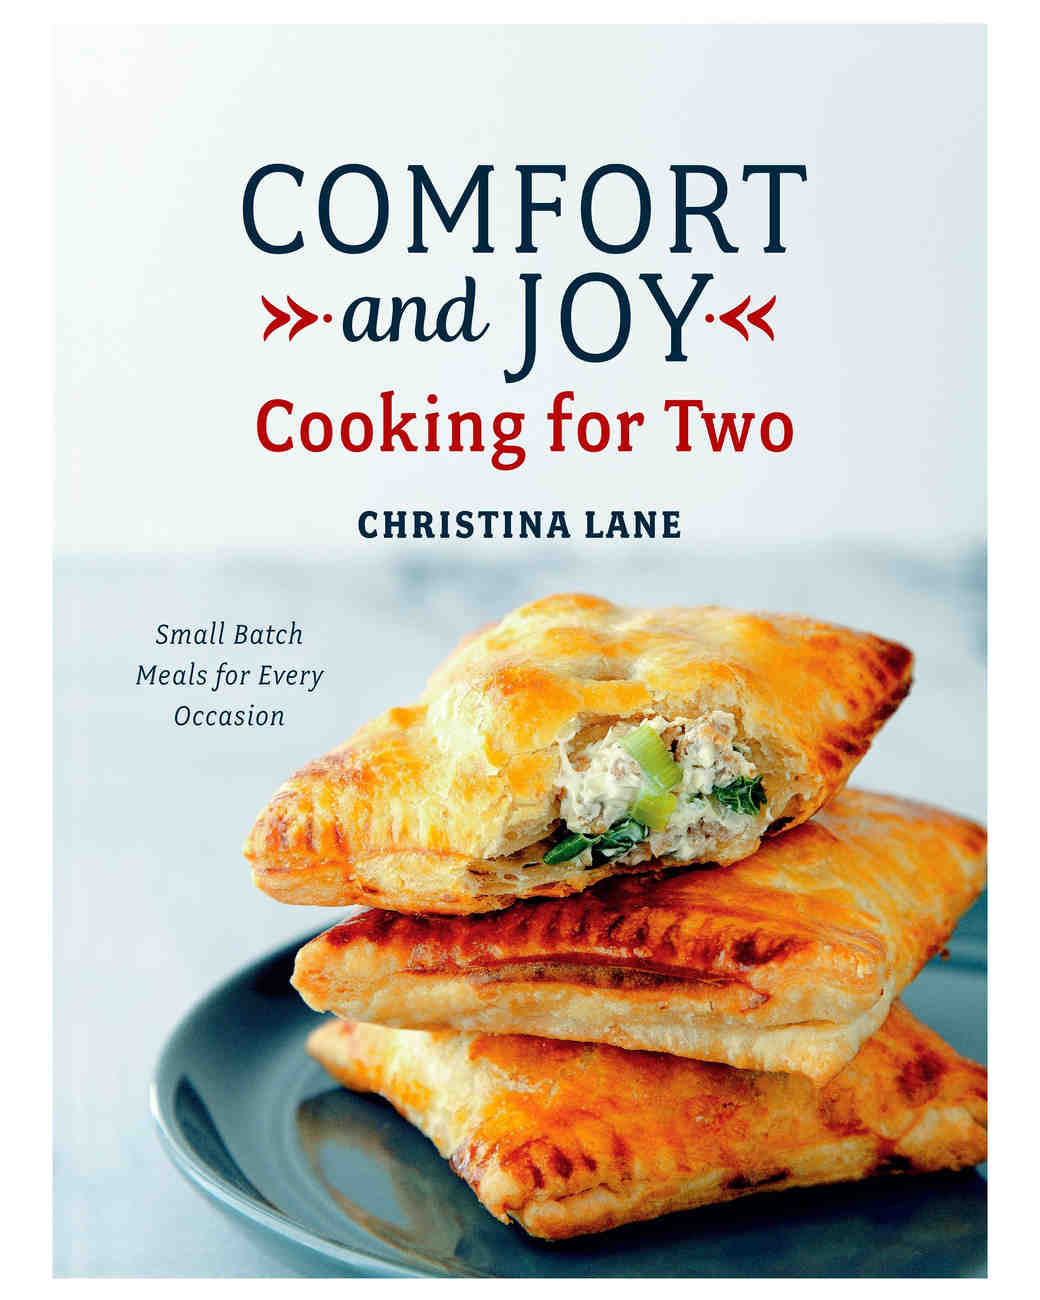 newlywed-cookbooks-comfort-joy-1015.jpg